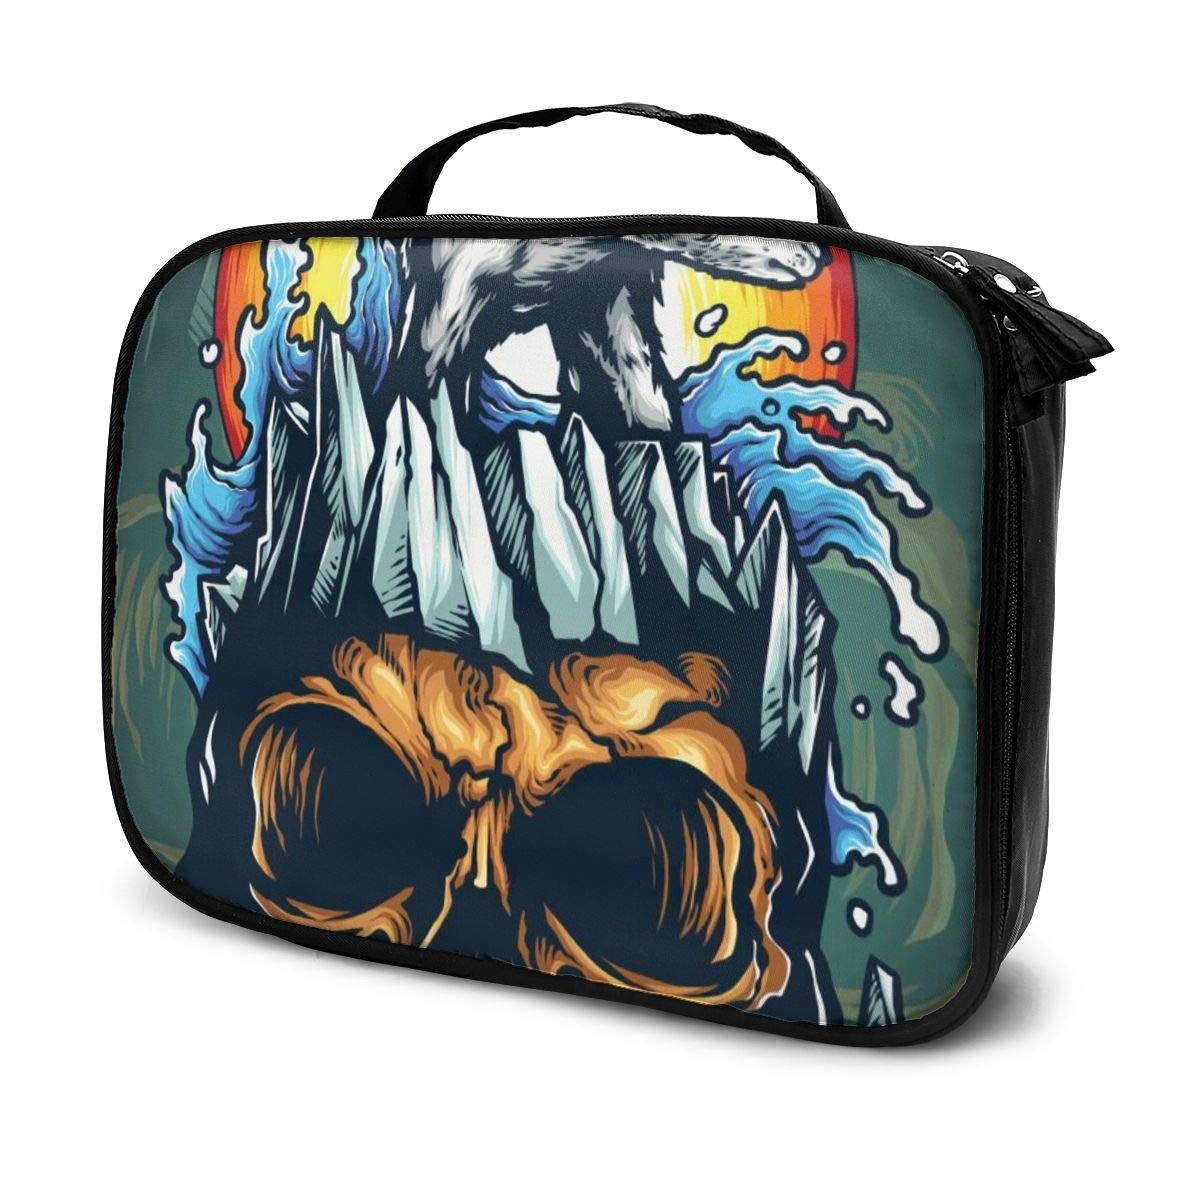 Amazon.com : Cosmetic bags for women travel, Vector ...